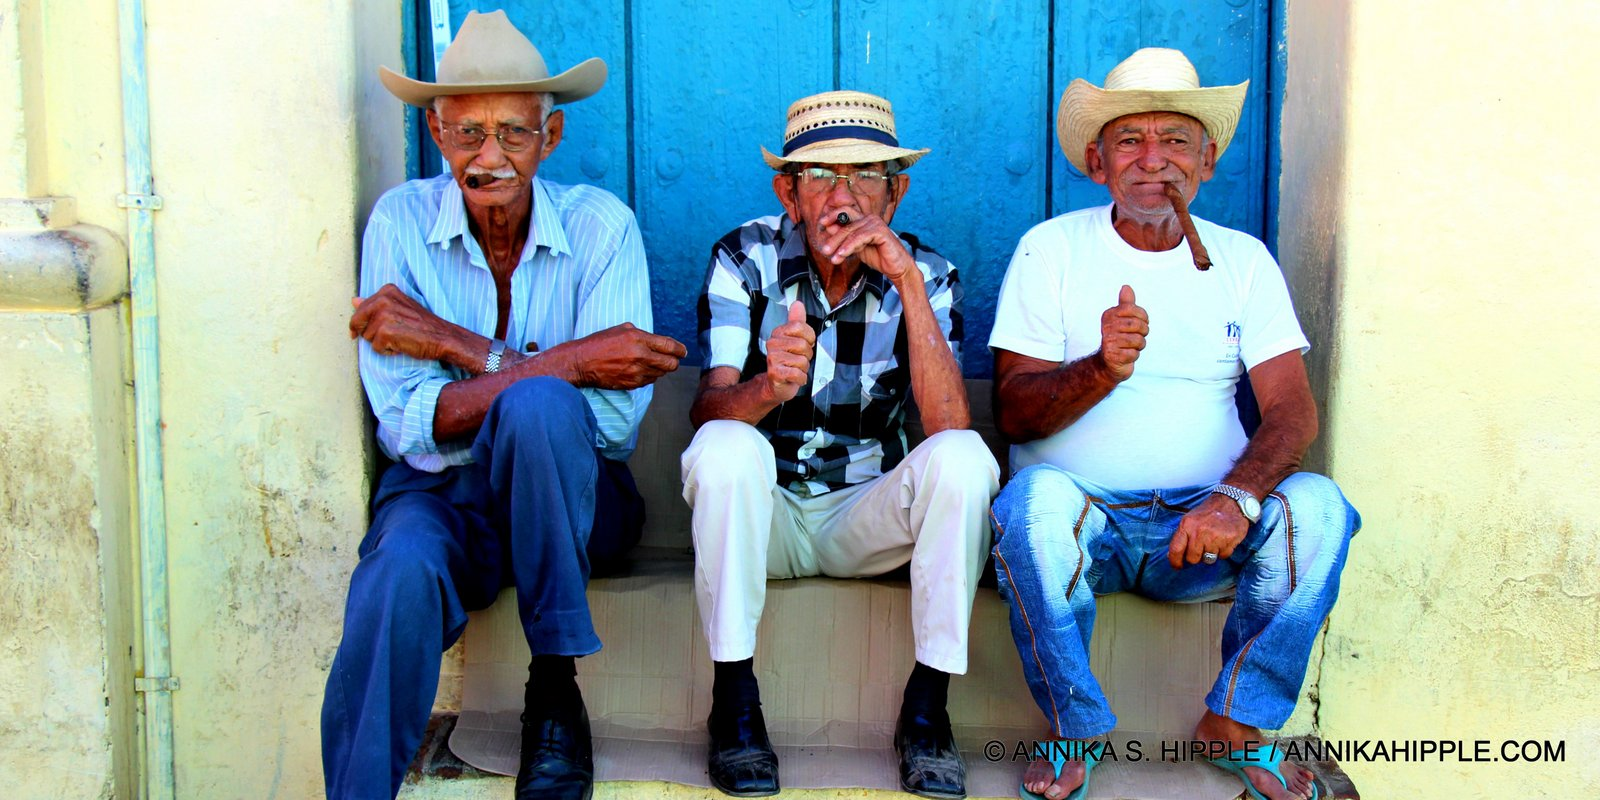 Cuban men with cigars